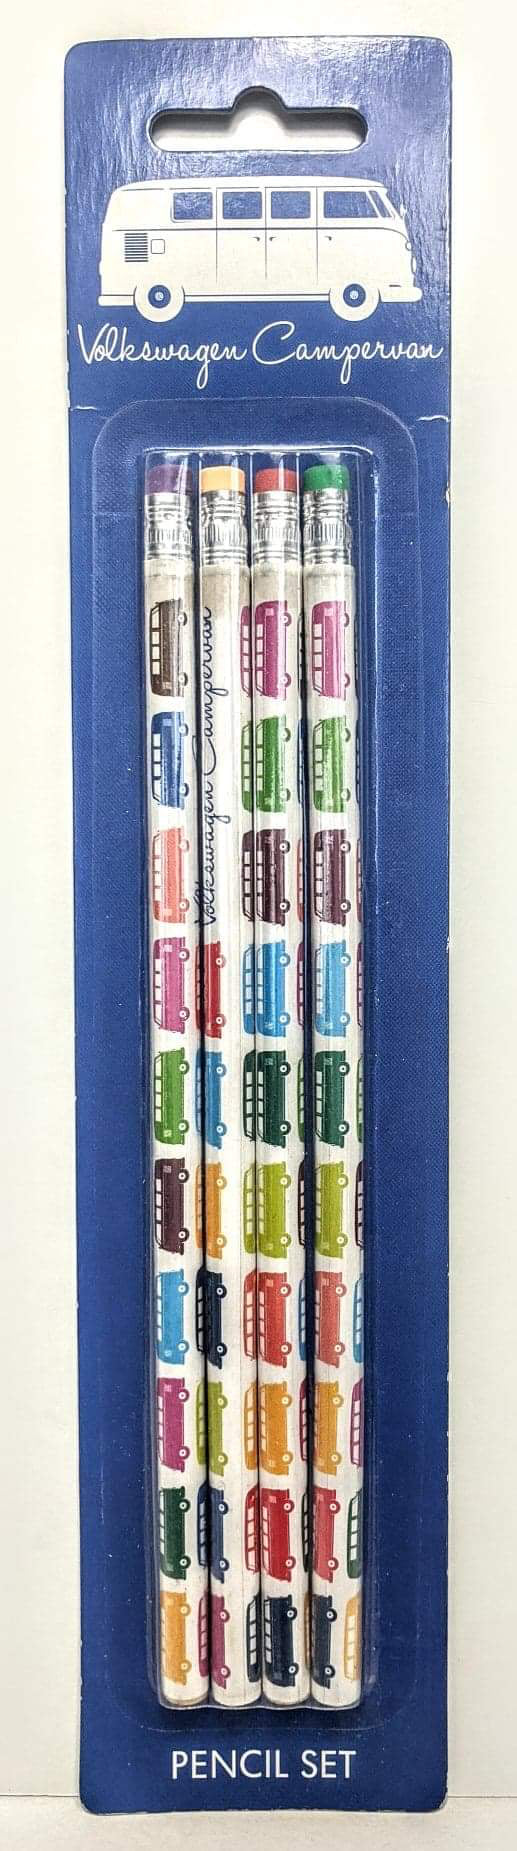 VW Campervan Pencil Set